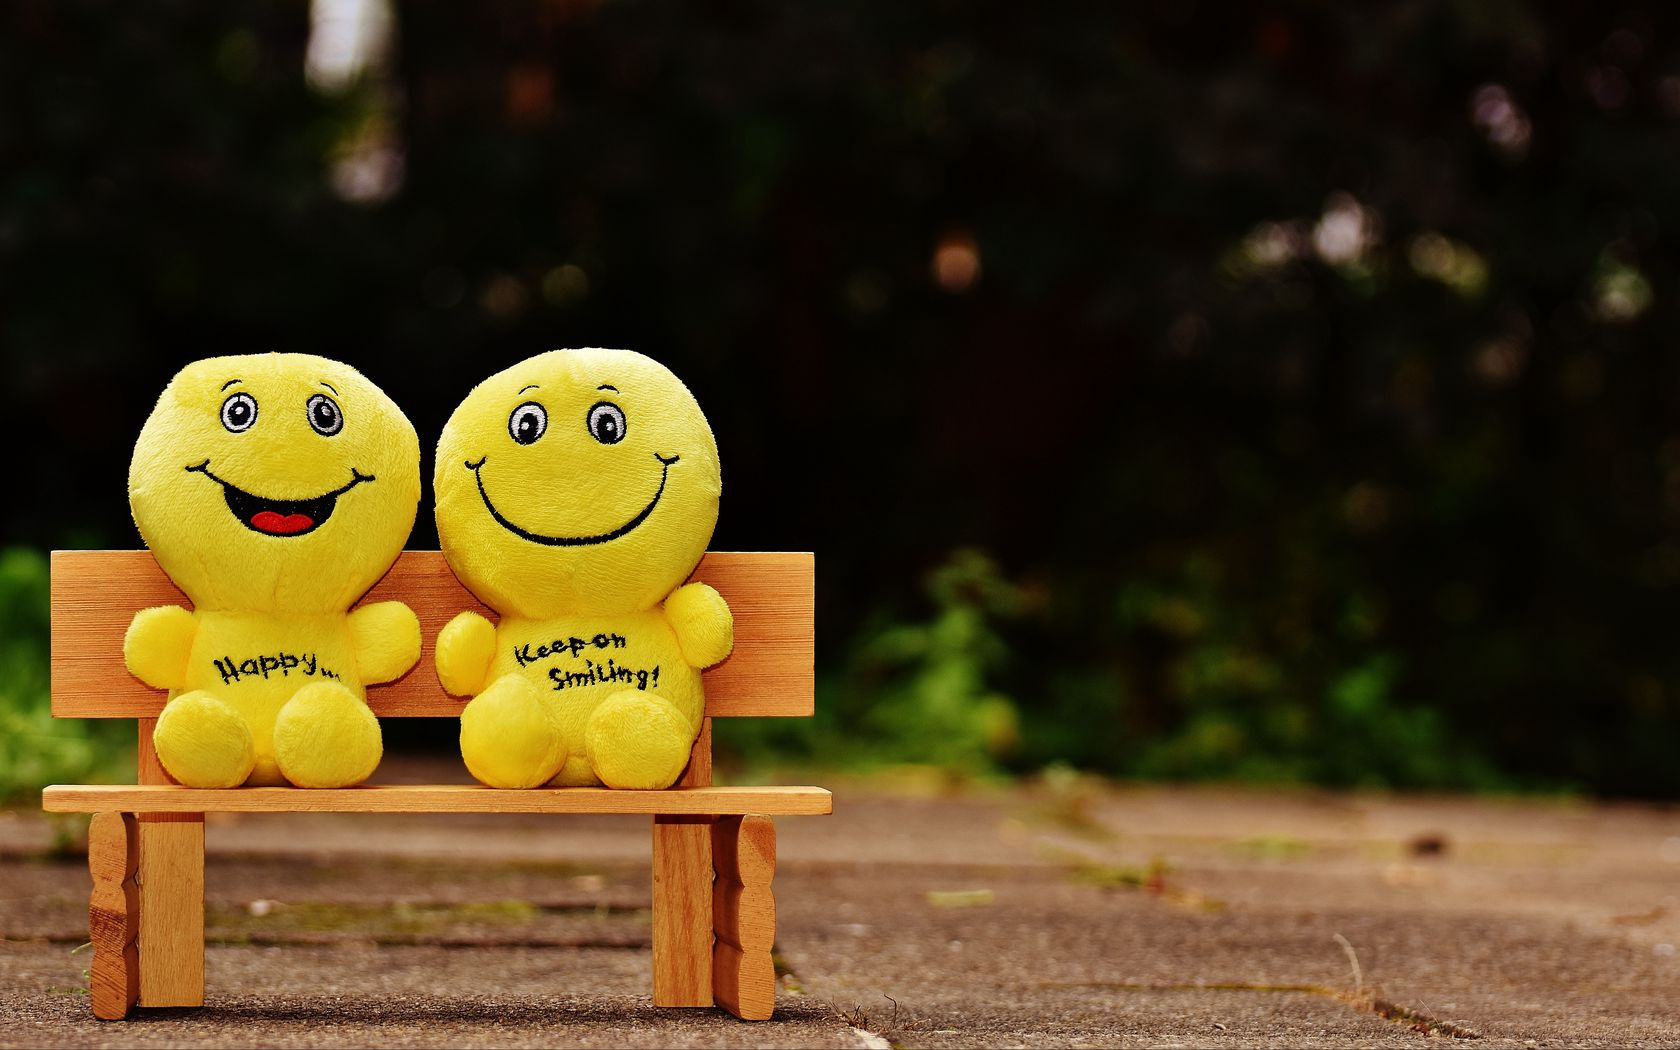 1680x1050 Wallpaper smiles, happy, cheerful, smile, bench, cute